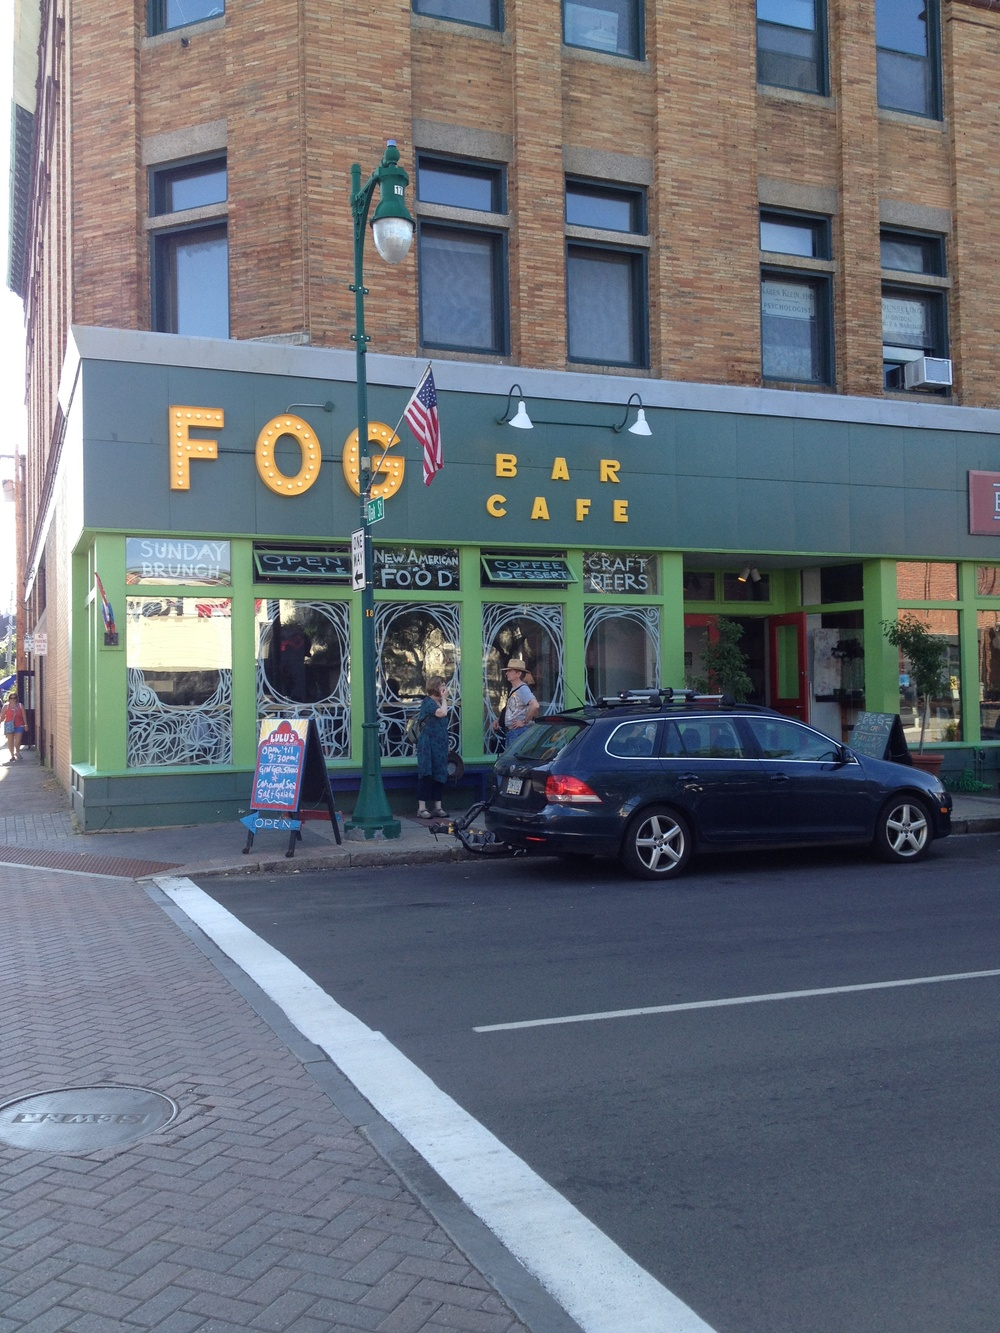 FOG bar + cafe Main Street, Rockland, ME.